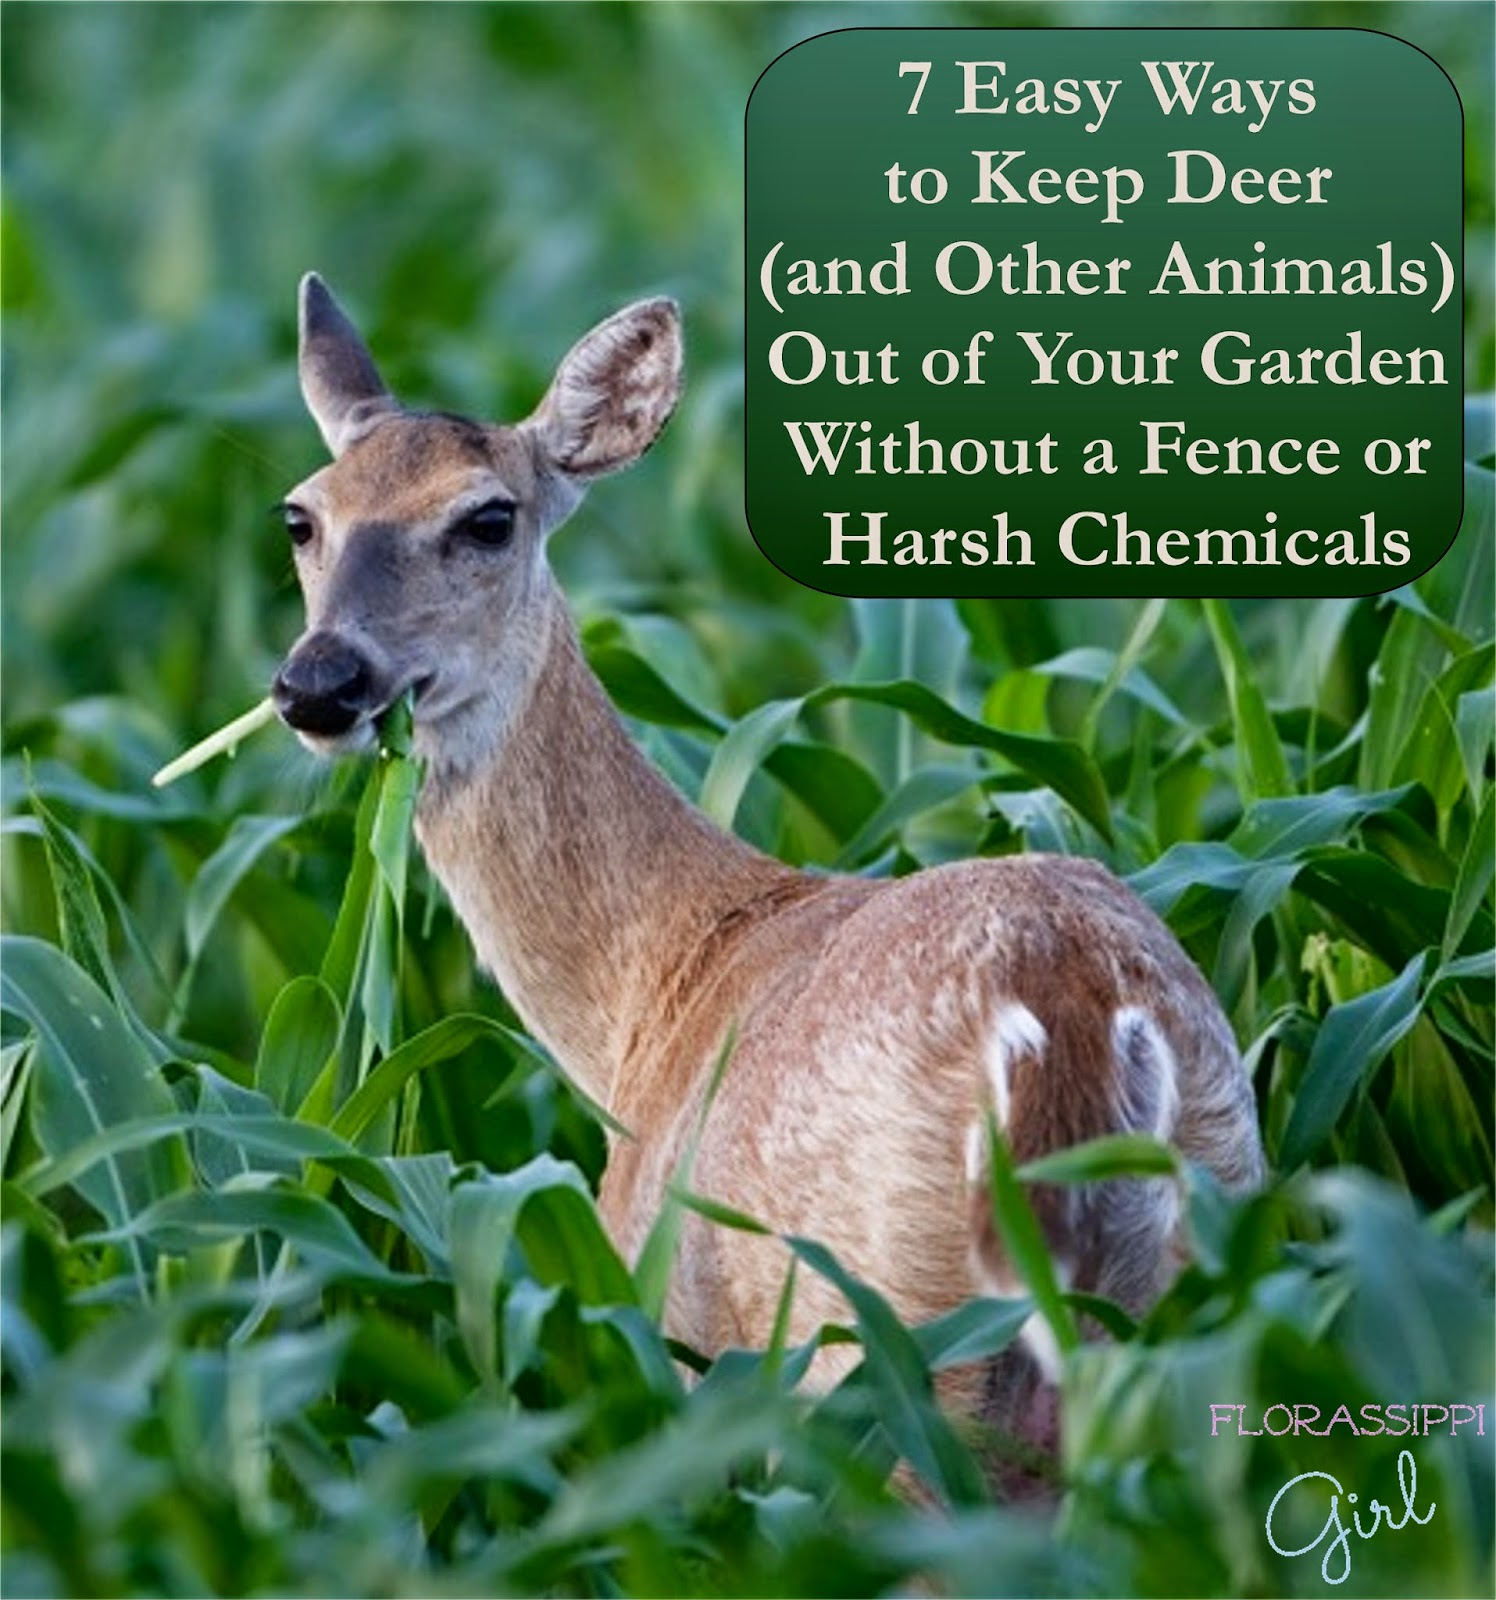 Florassippi Girl 7 Easy Ways to Keep Deer and Other Animals Out